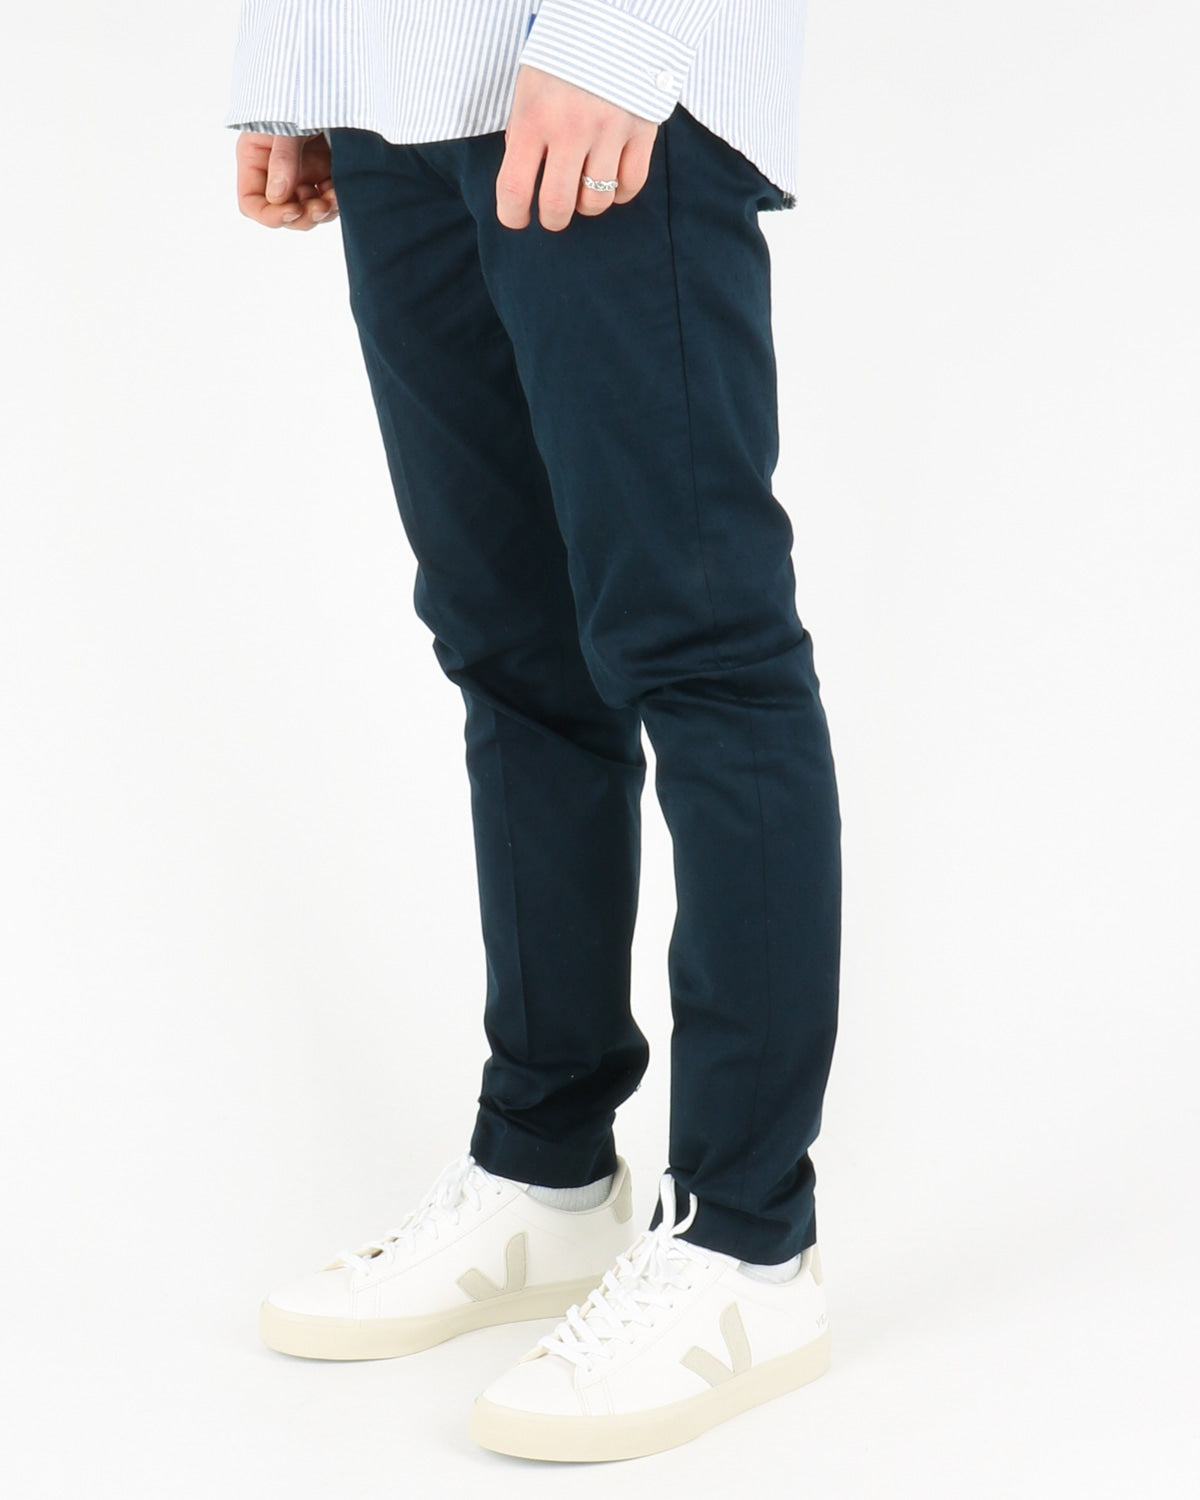 libertine libertine_transworld pants_navy_2_3